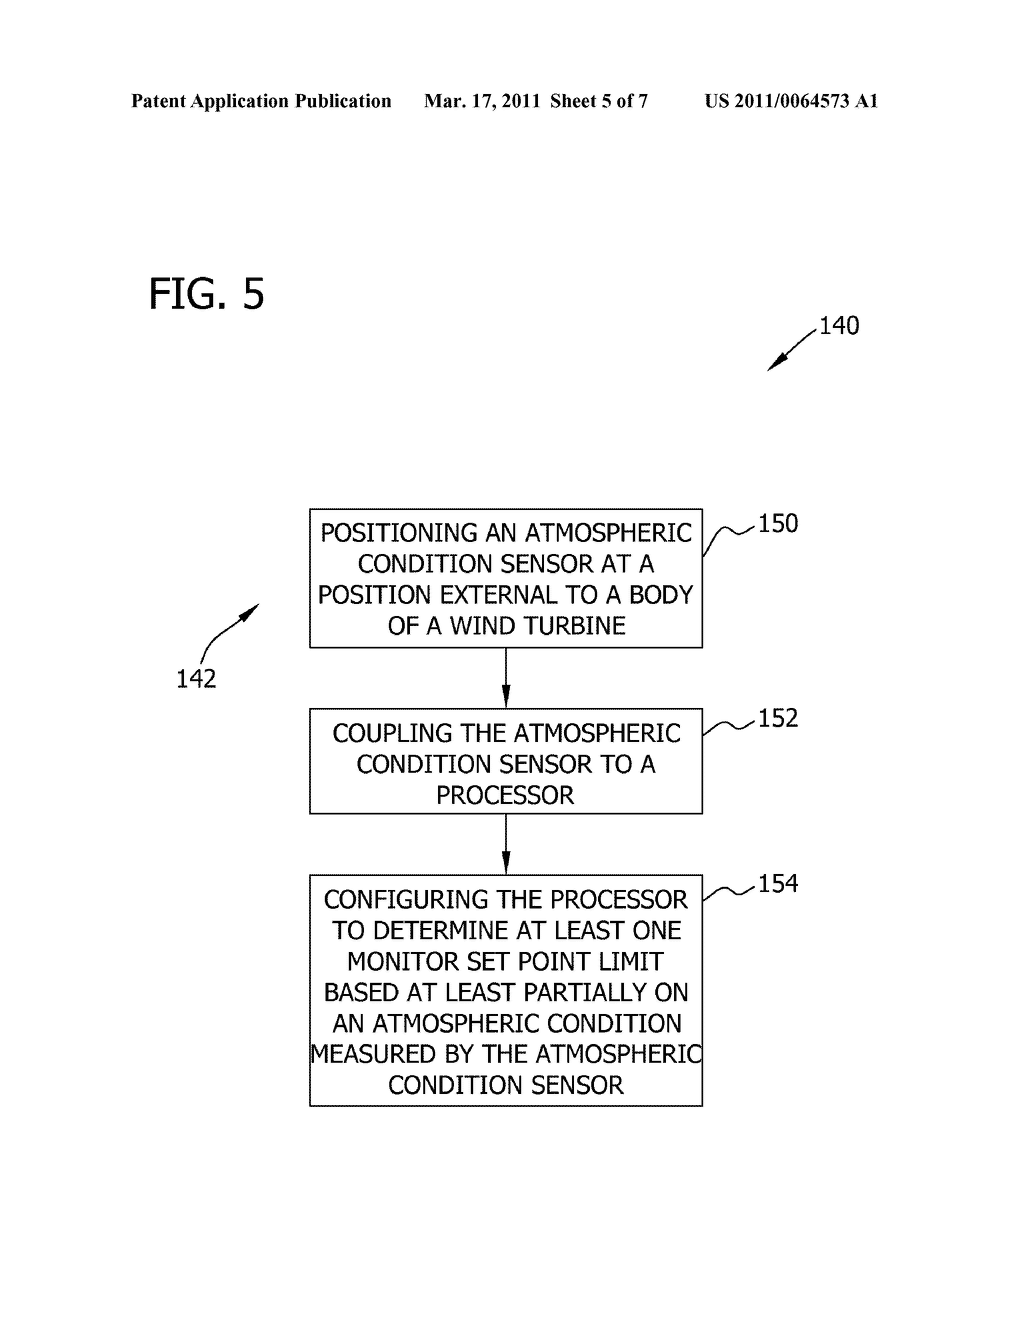 SYSTEM AND METHODS FOR DETERMINING A MONITOR SET POINT LIMIT FOR A WIND TURBINE - diagram, schematic, and image 06